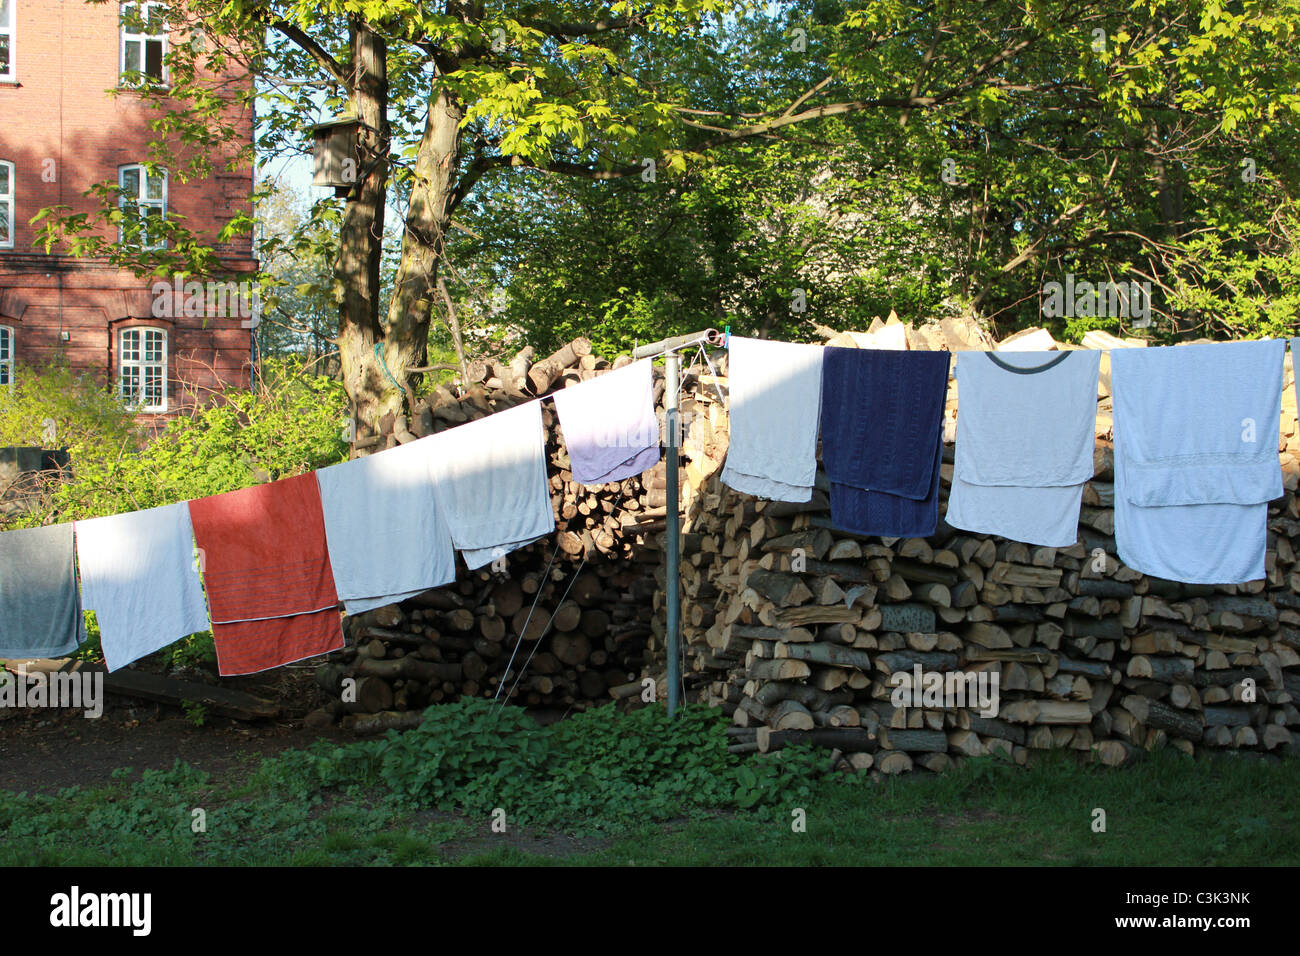 Clean laundry getting dry outside at free town Christiania, Copenhagen, Denmark - Stock Image